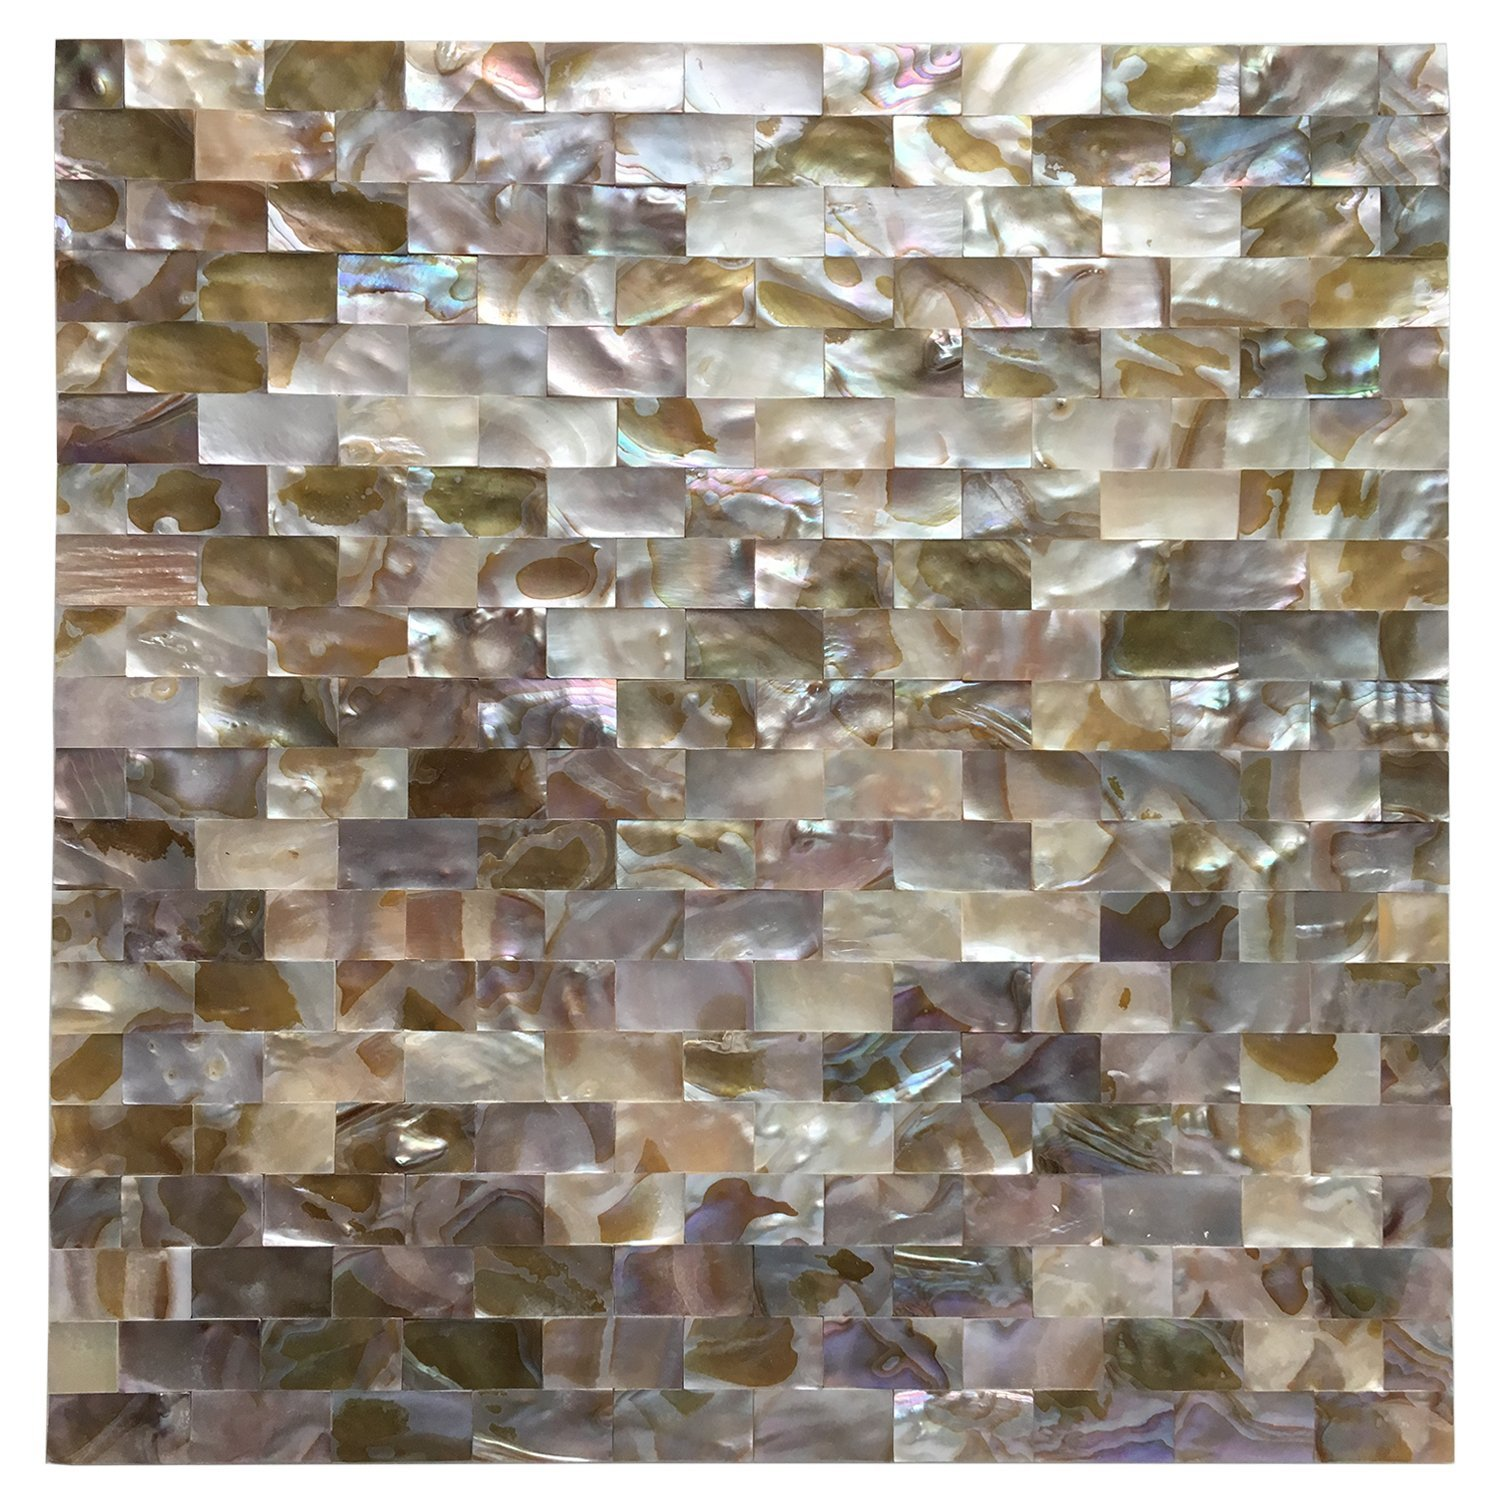 amazon com art3d 6 pack peel and stick mother of pearl shell tile amazon com art3d 6 pack peel and stick mother of pearl shell tile for kitchen backsplashes 12